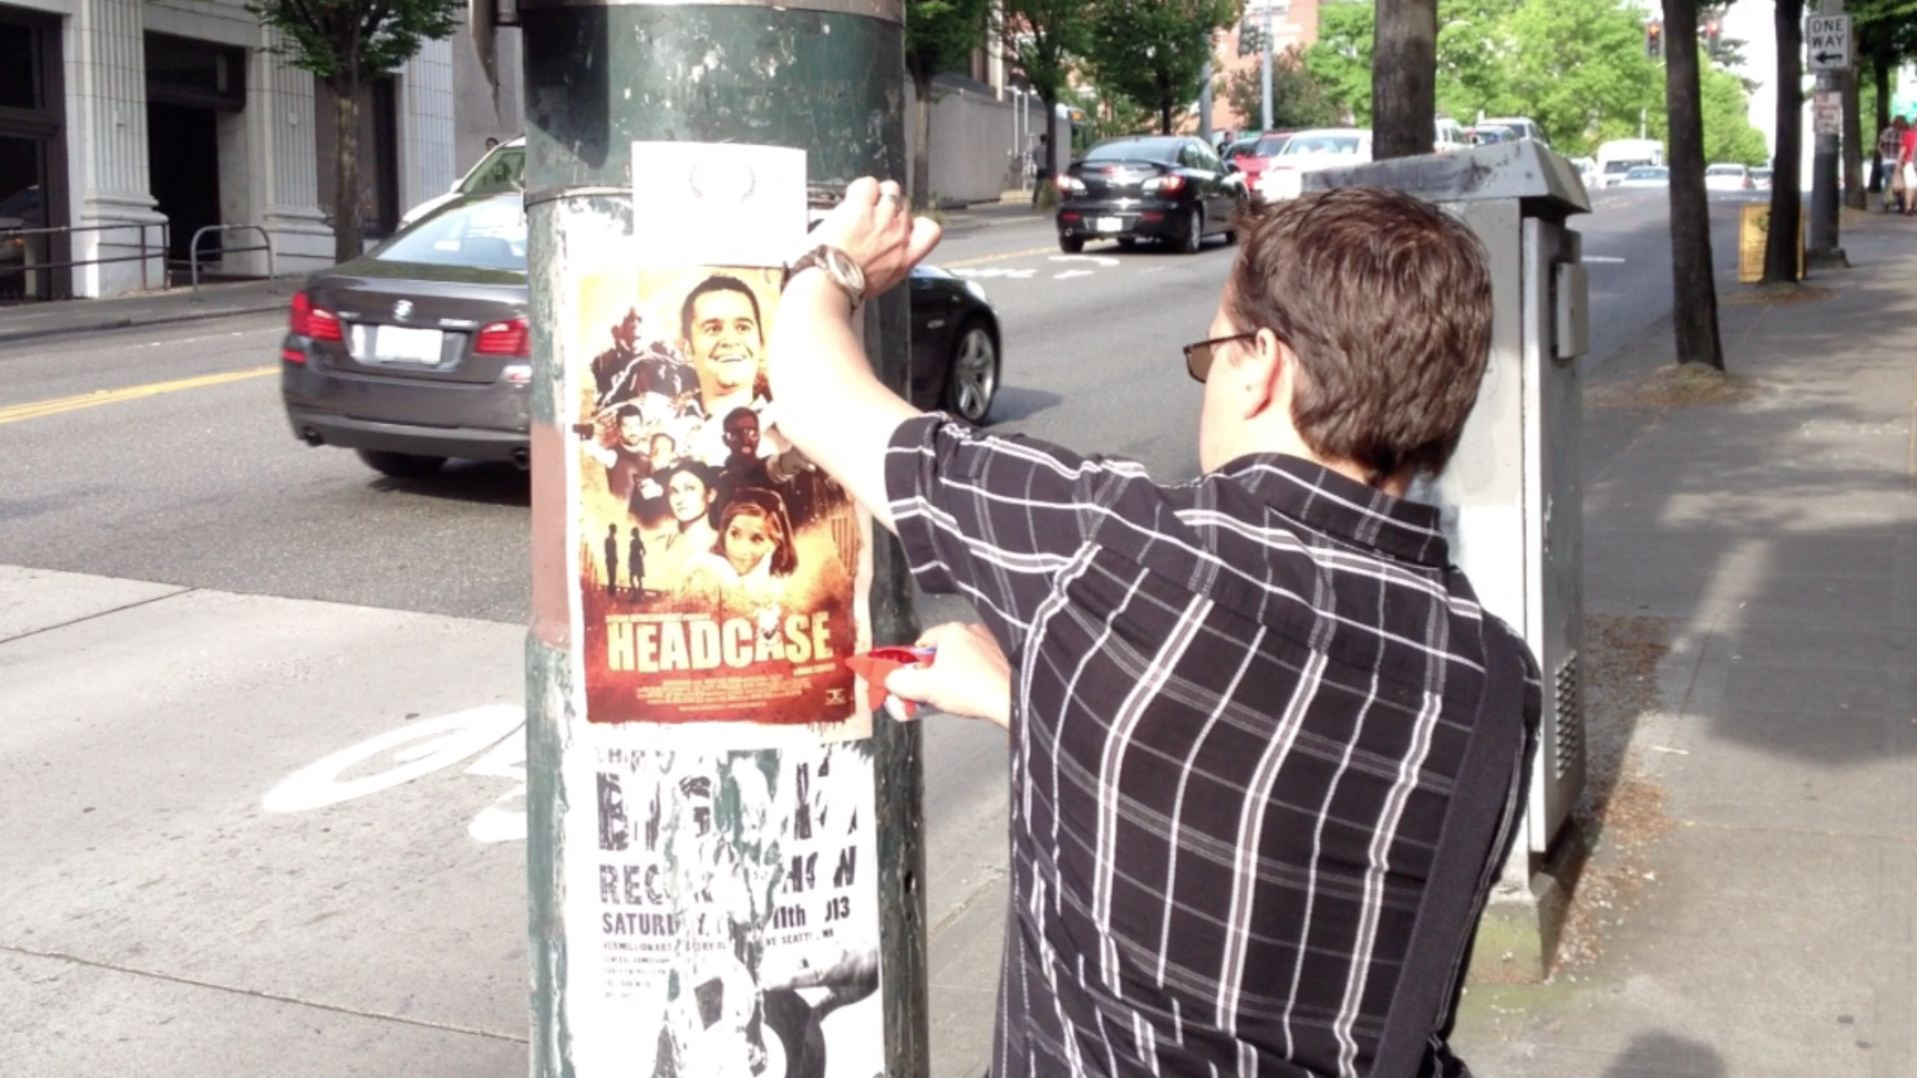 Producer, Alex Jordan plastering Seattle with posters